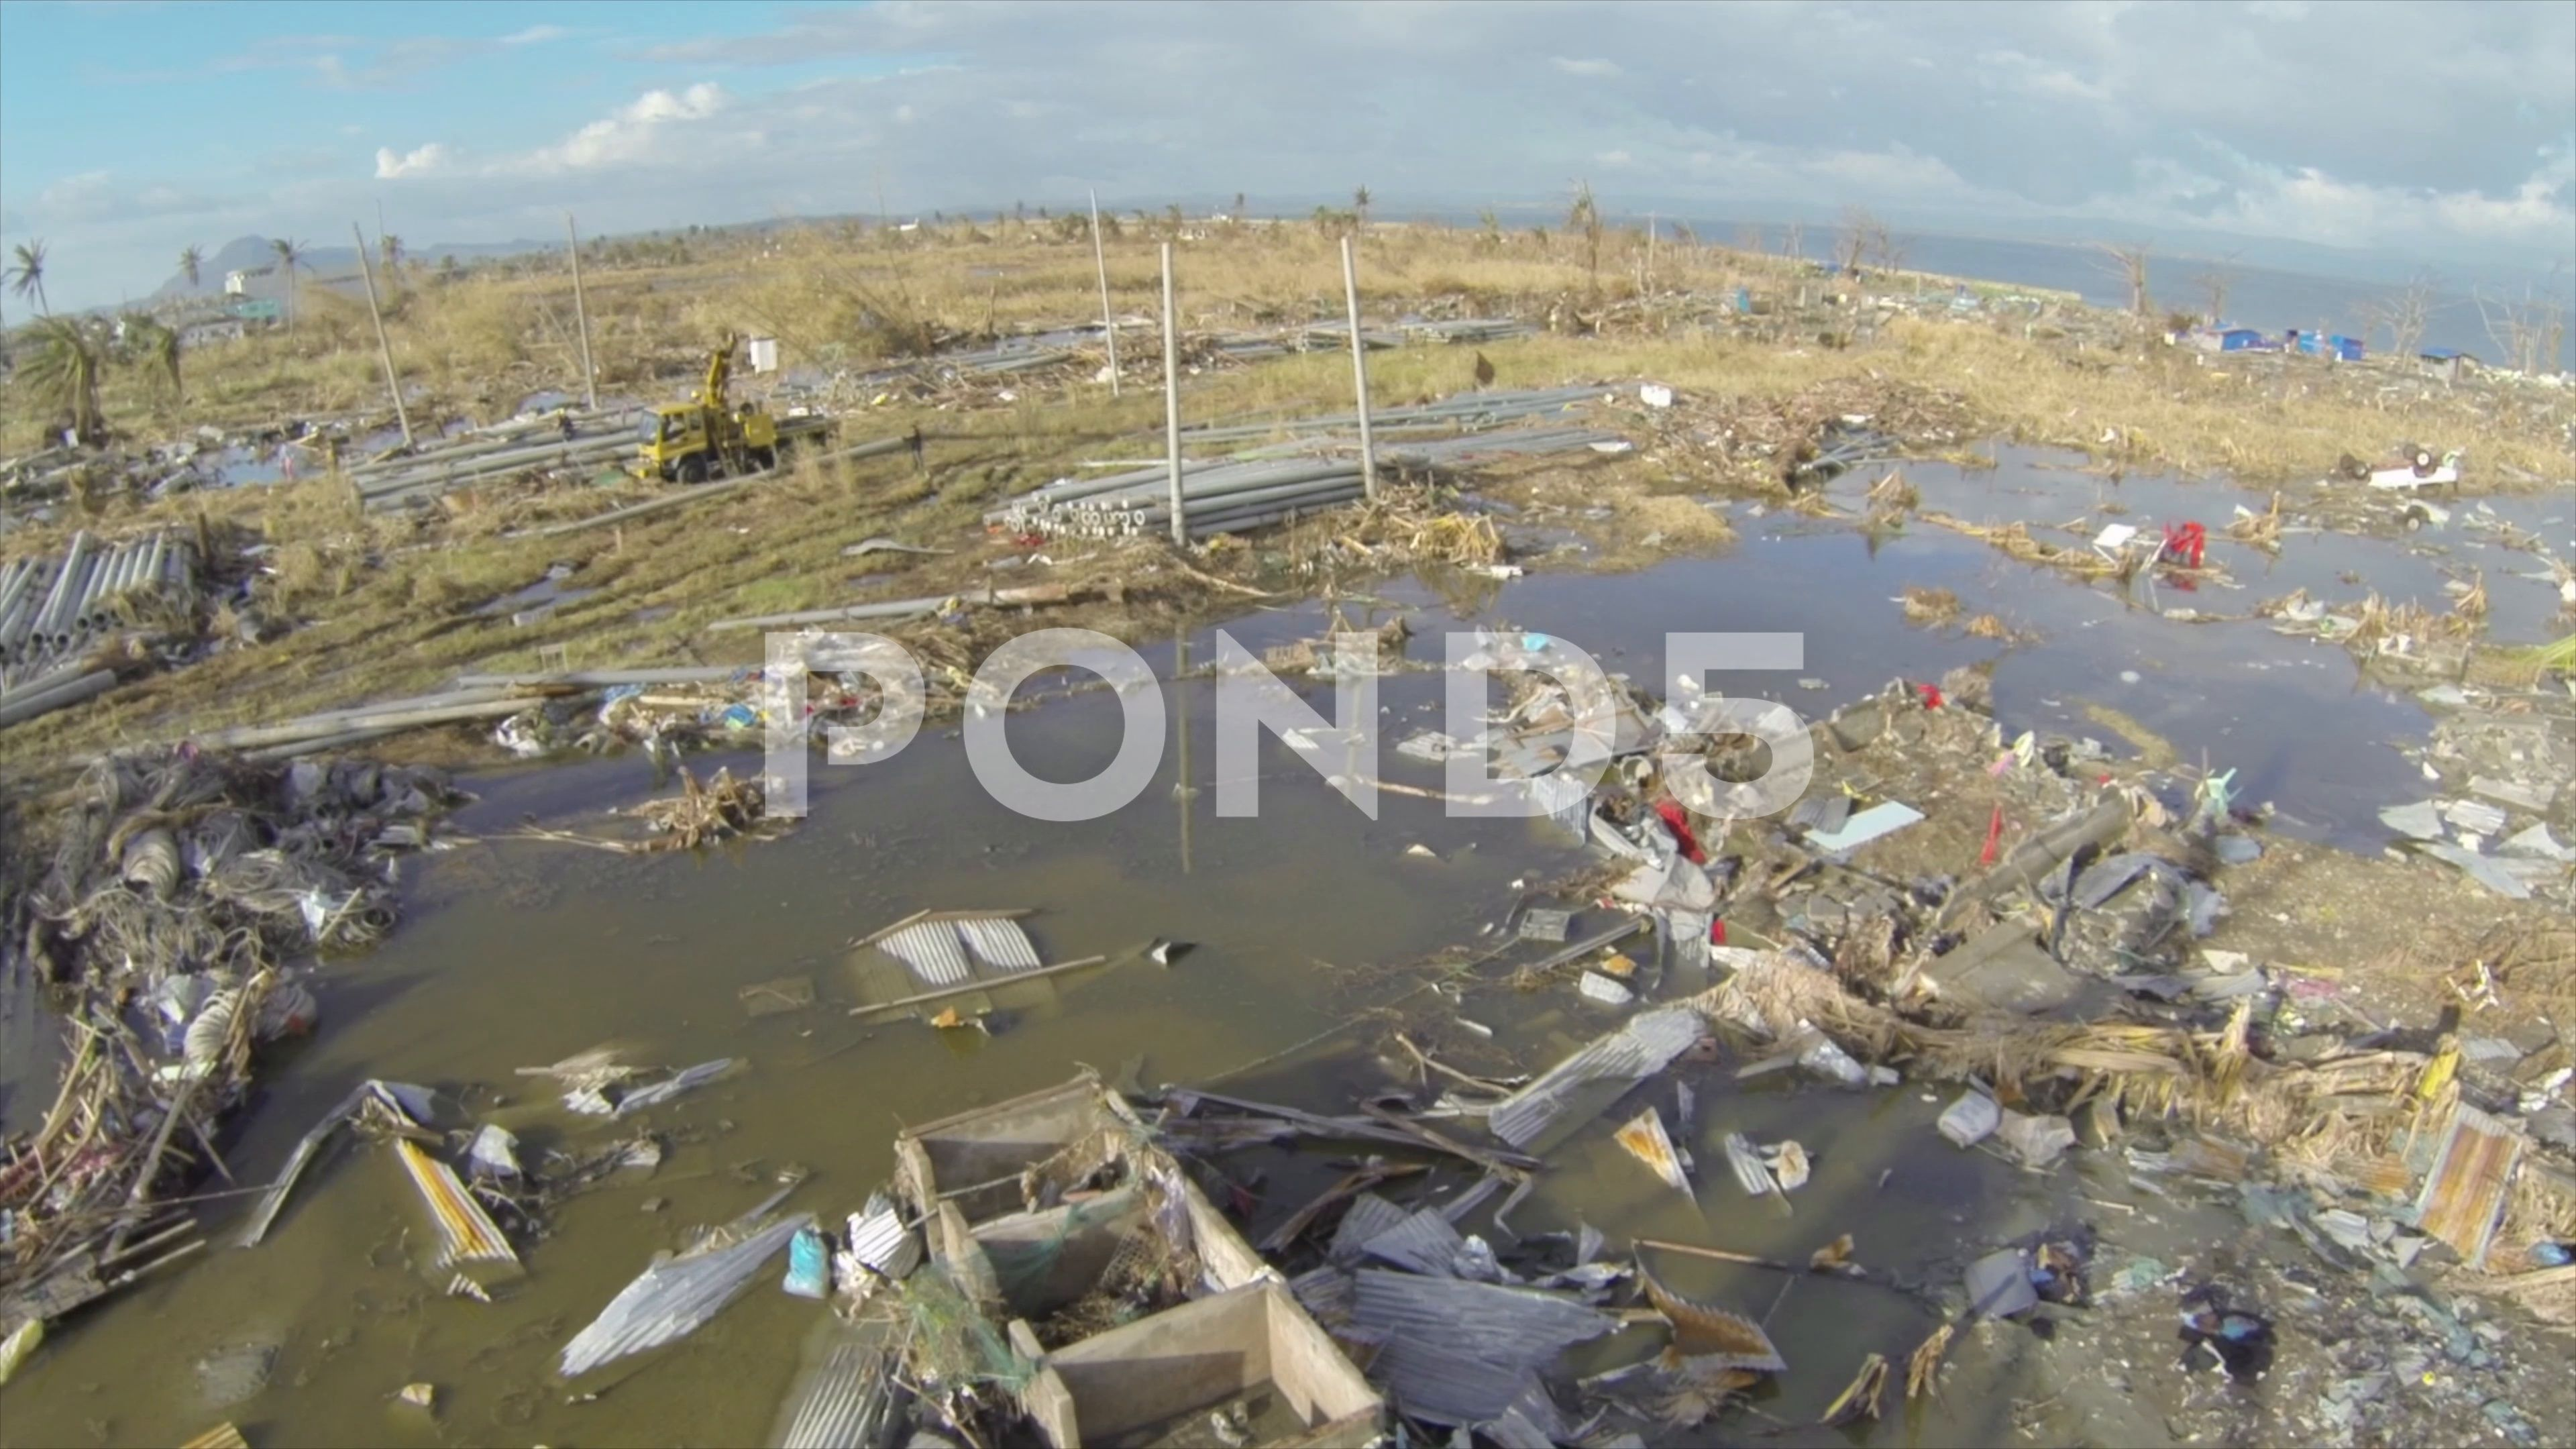 Drone Footage At Tacloban The Philipines After The Cyclone Hurricane Haiyan Stock Footage Tacloban Philipines Drone Footage Tacloban Cyclone Hurricane